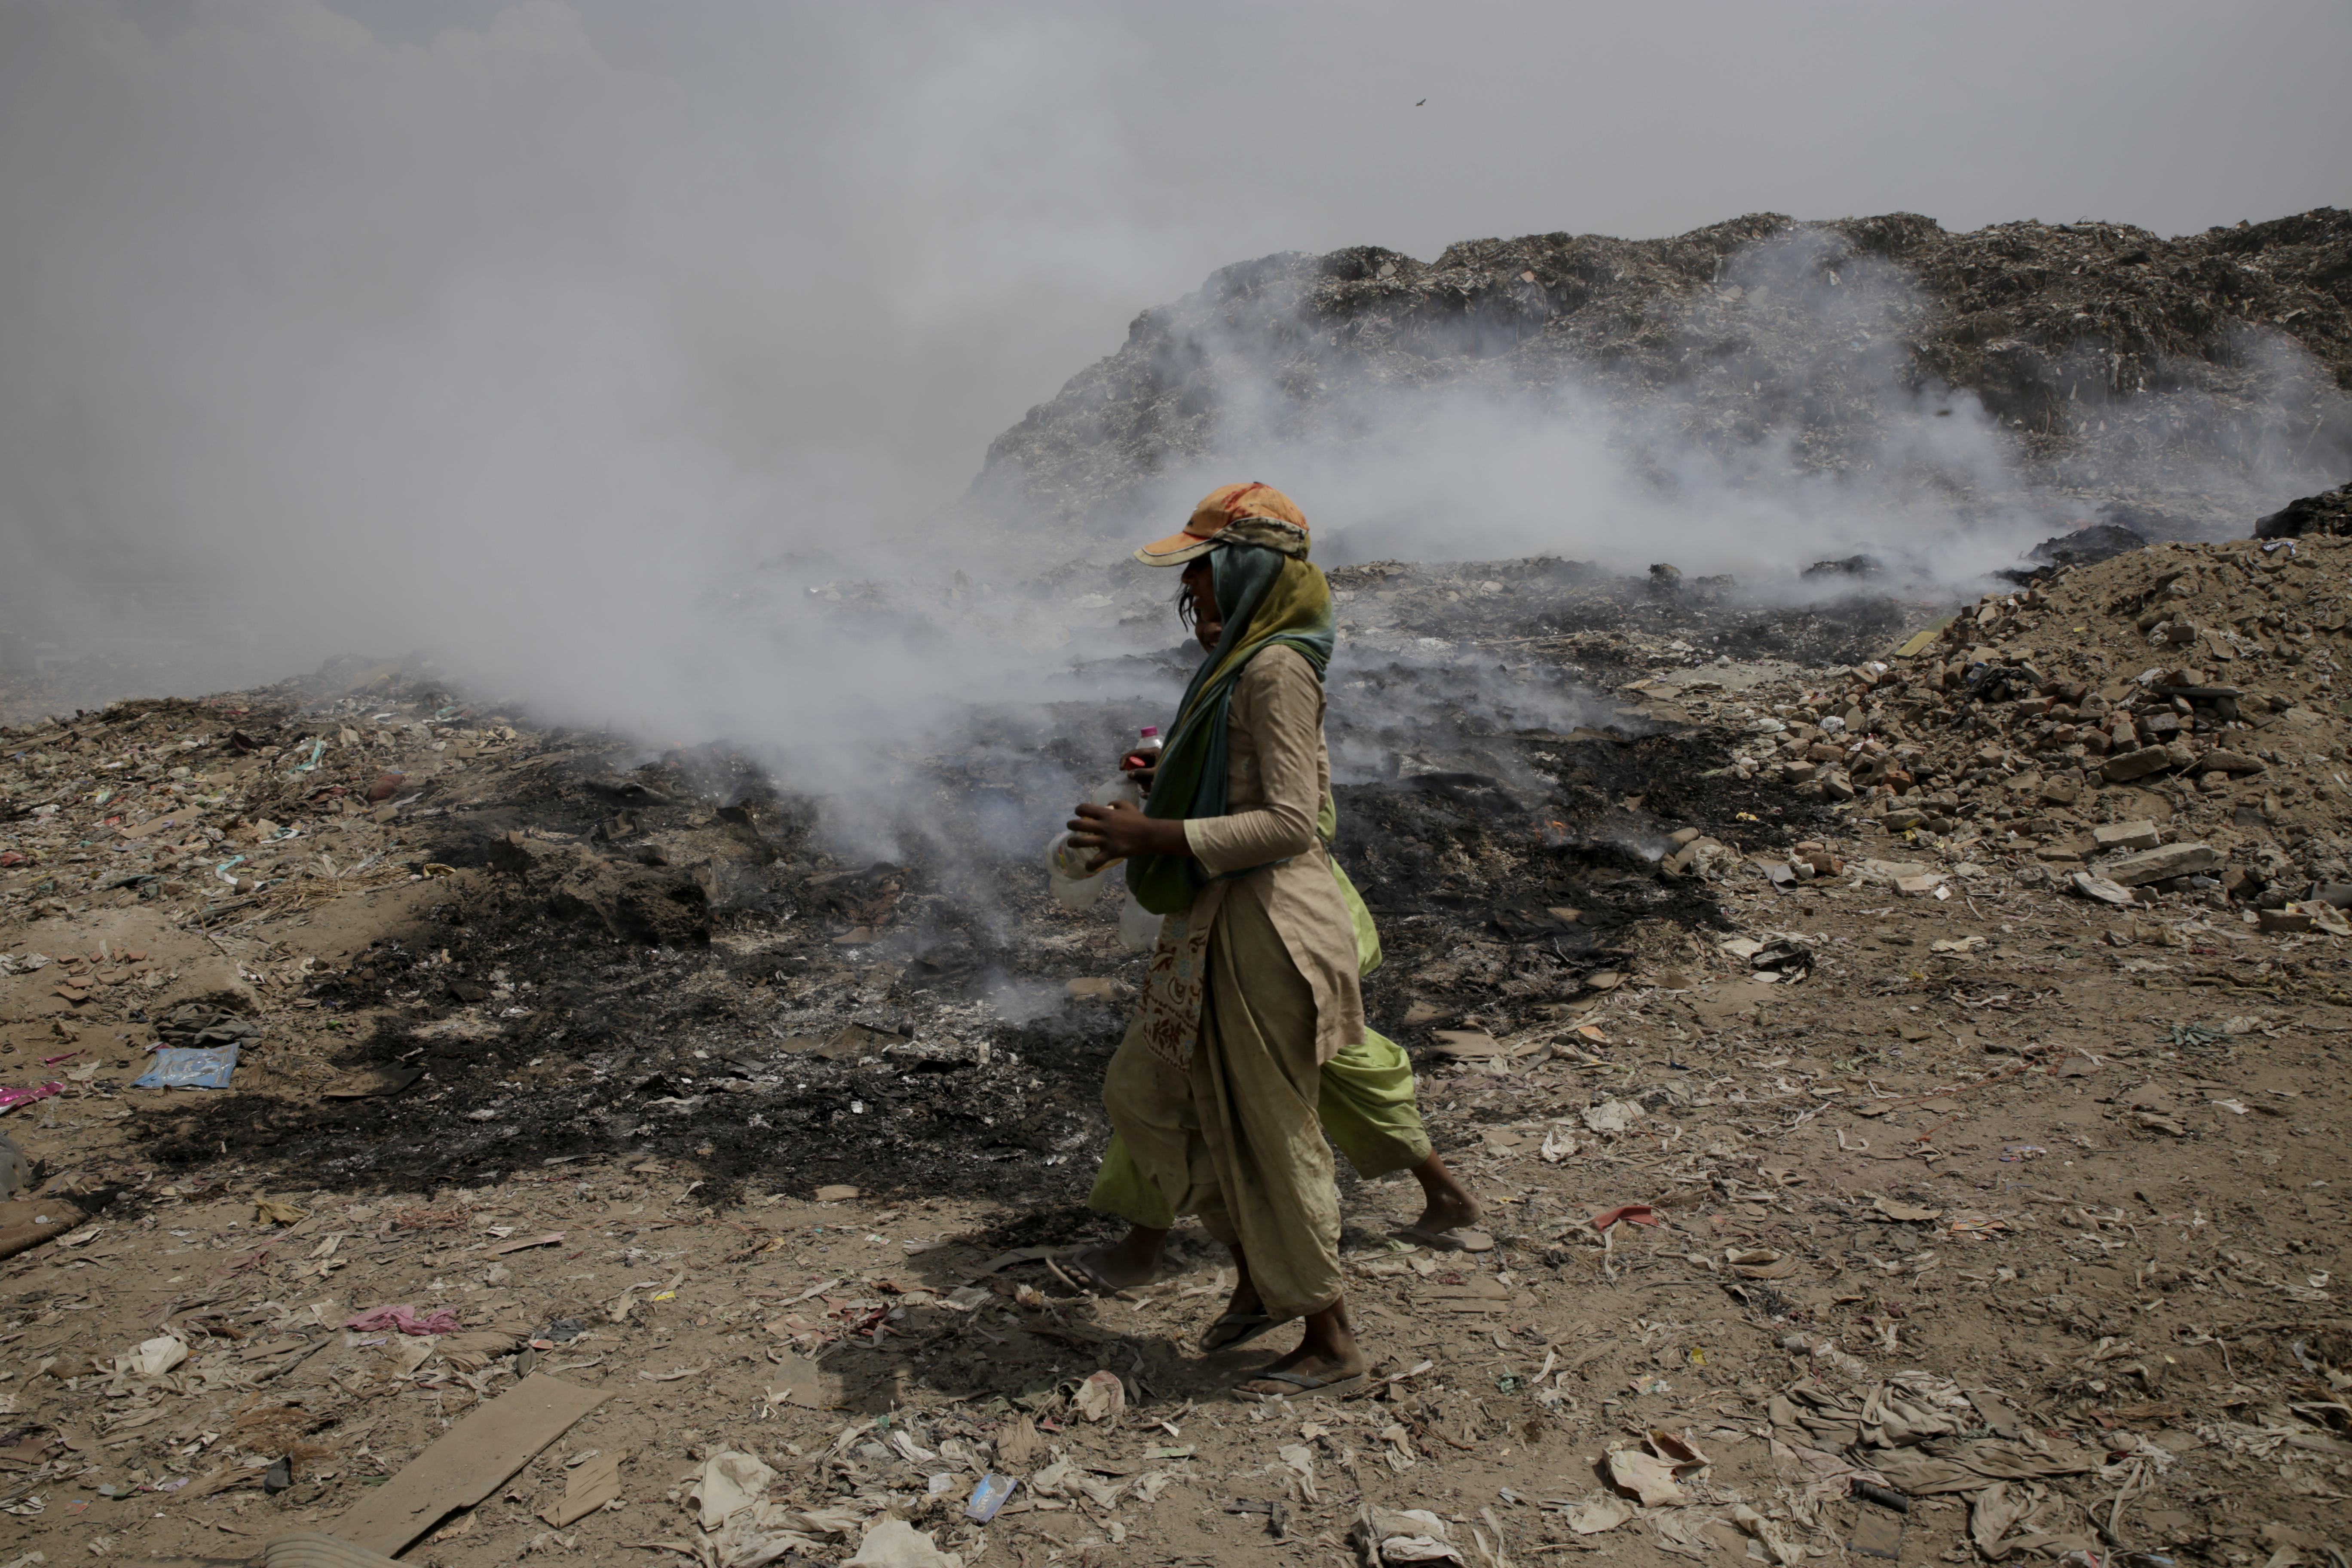 Ragpickers continue their work in Bhalswa despite the fire